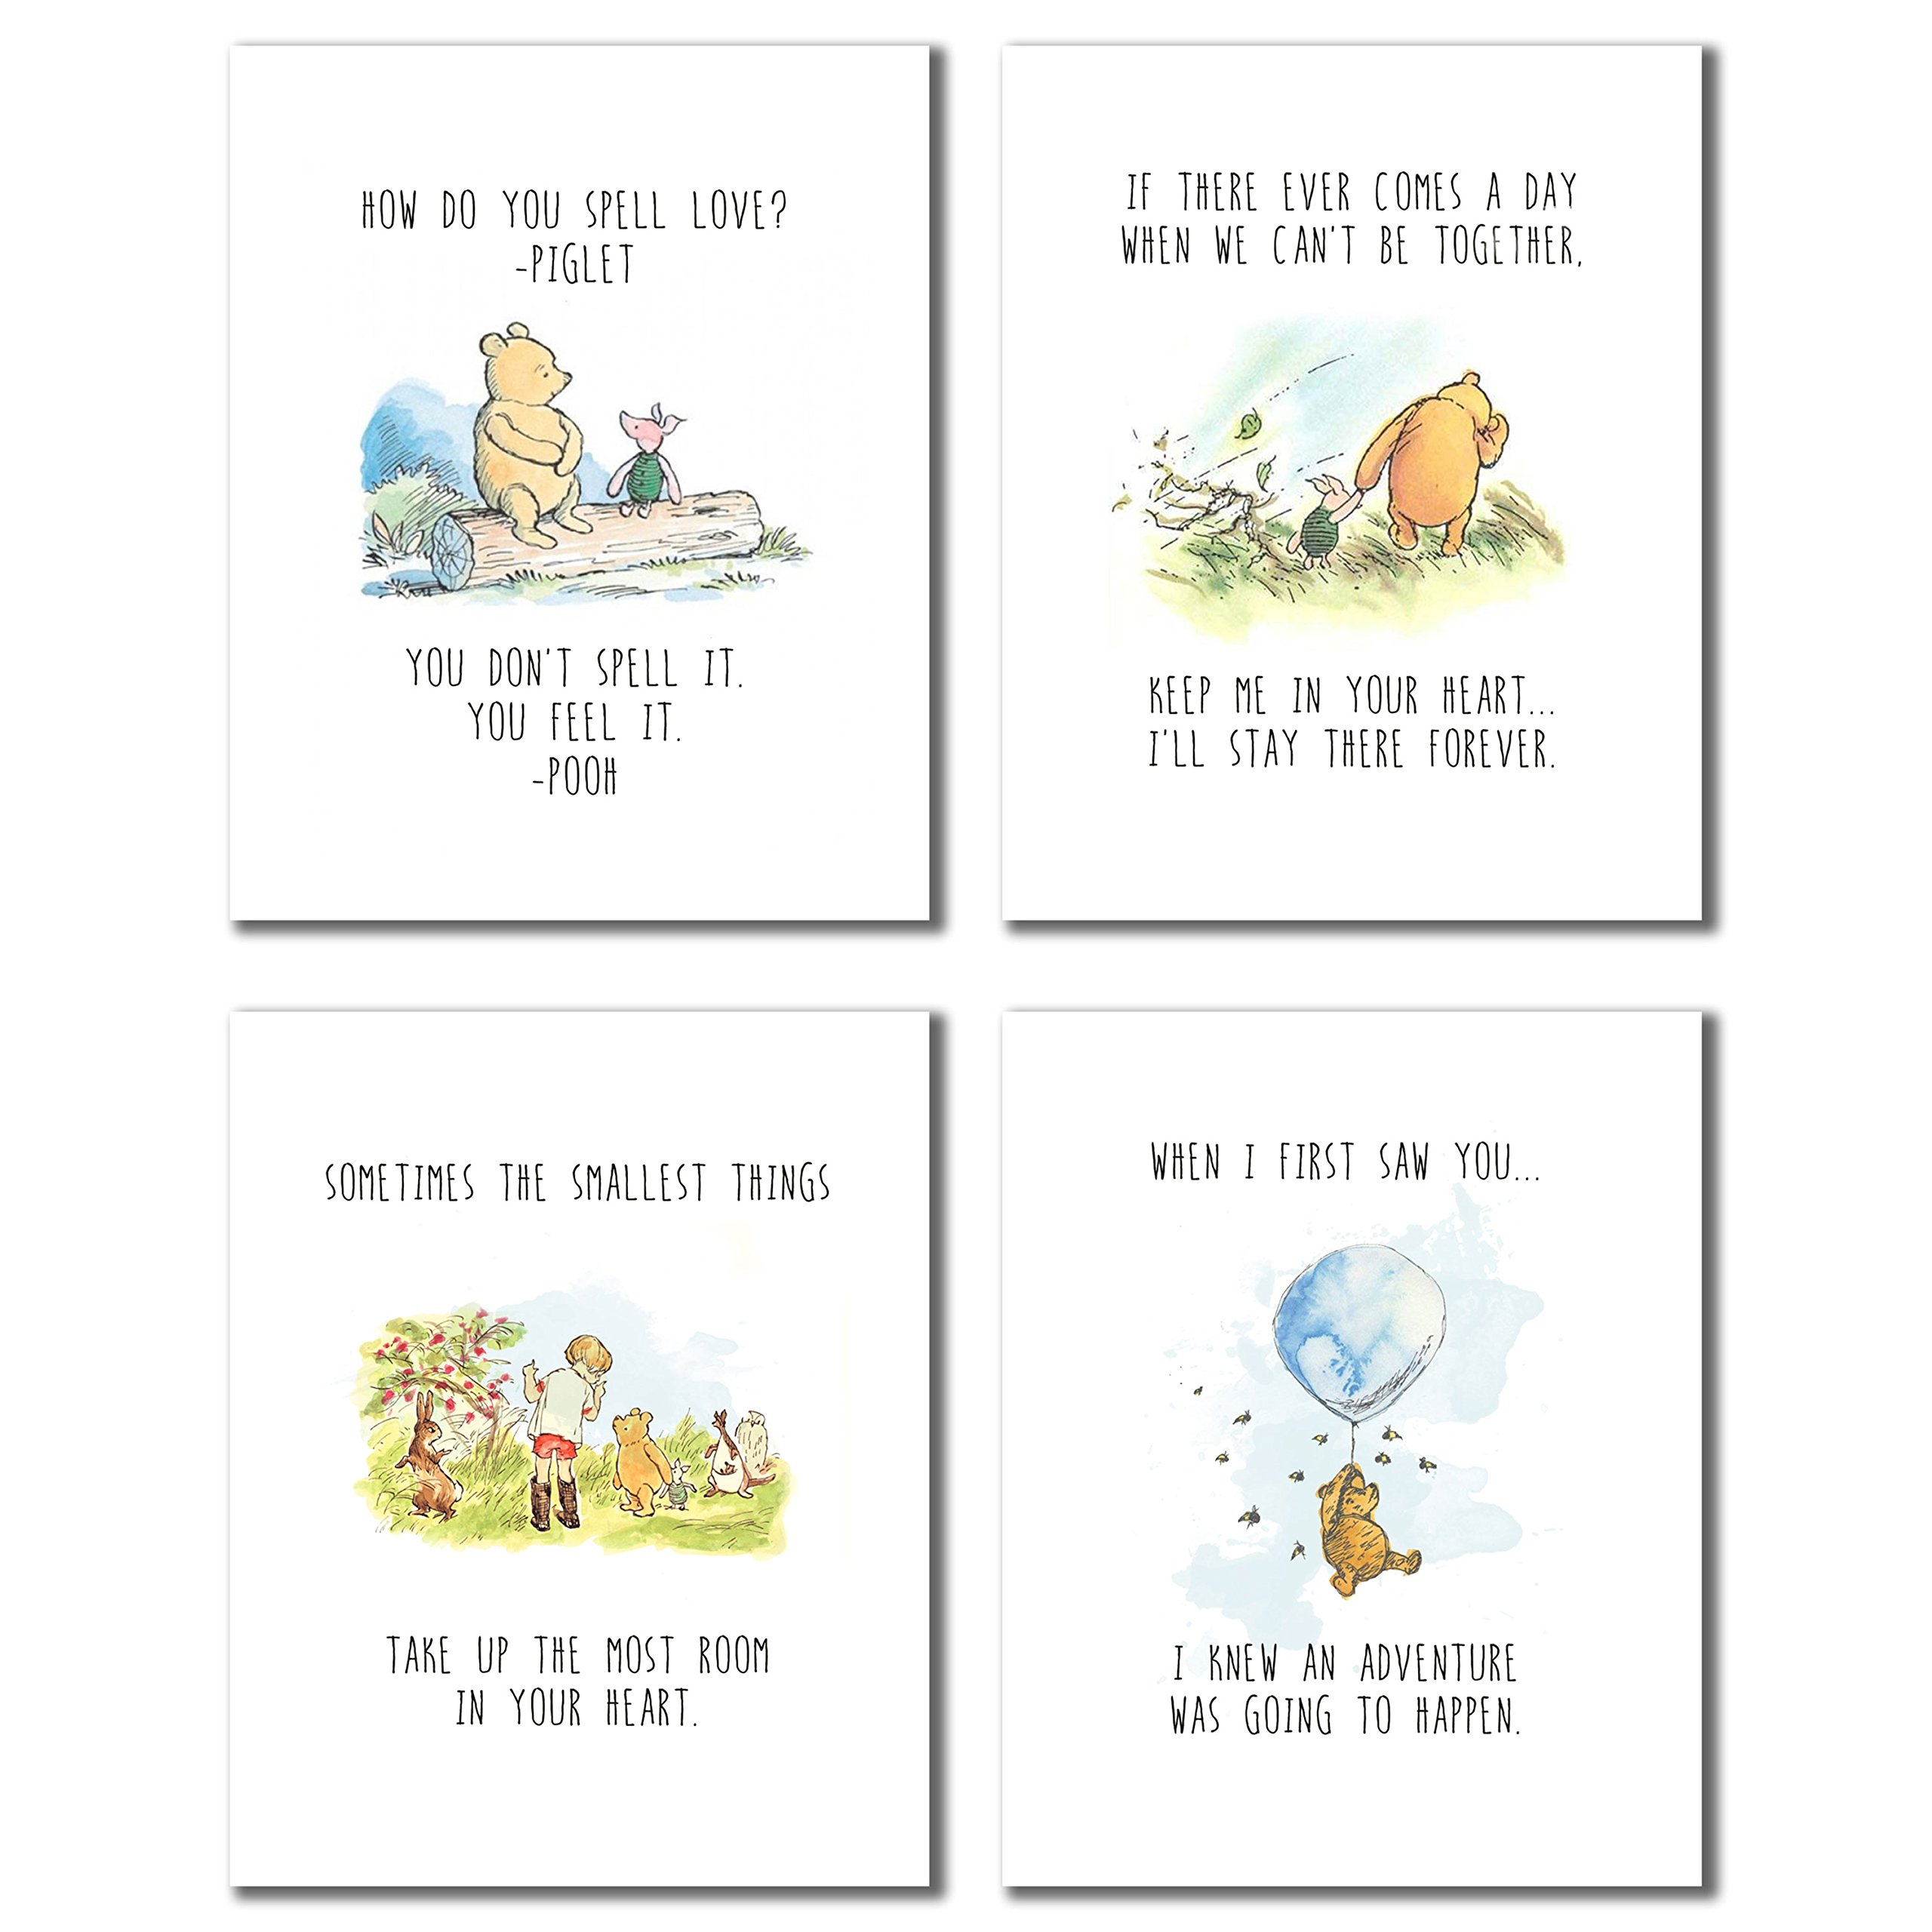 Winnie The Pooh Wall Sticker Amazon Com Sometimes The Smallest Things Take Up The Most